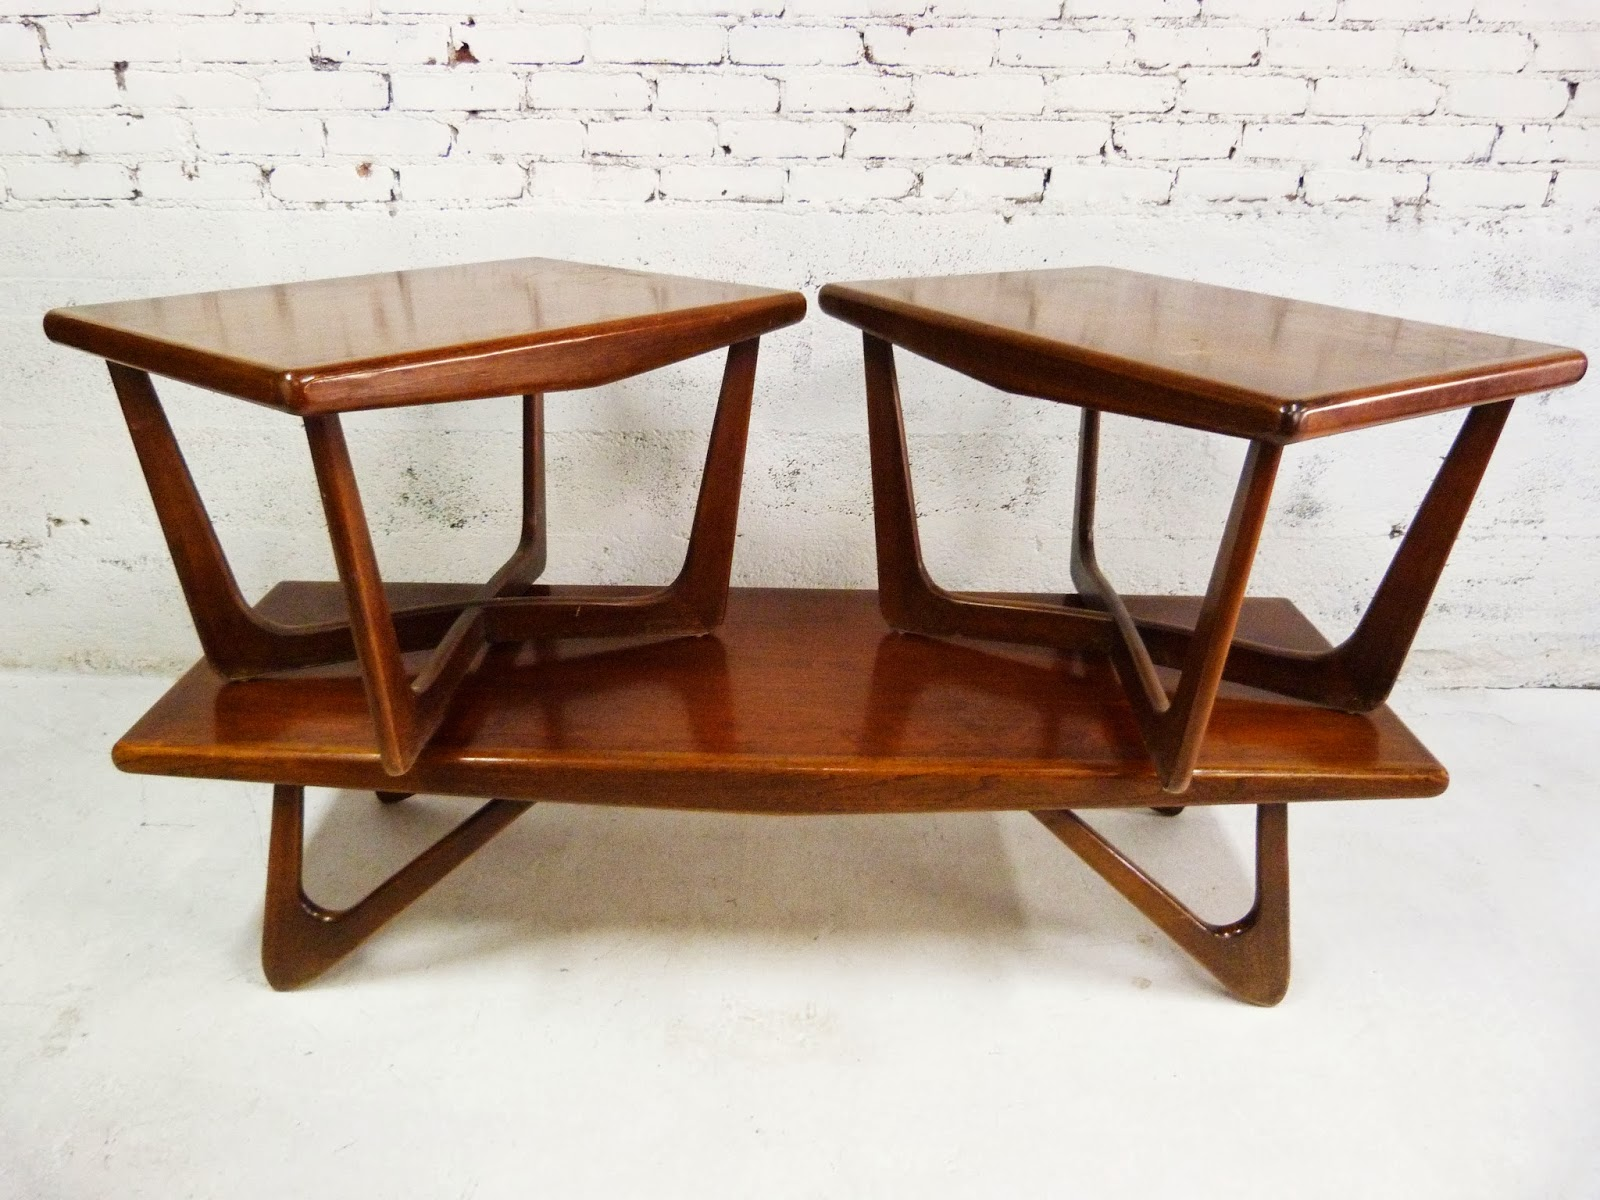 Modern mid century danish vintage furniture shop used restoration repair denver Modern coffee and end tables